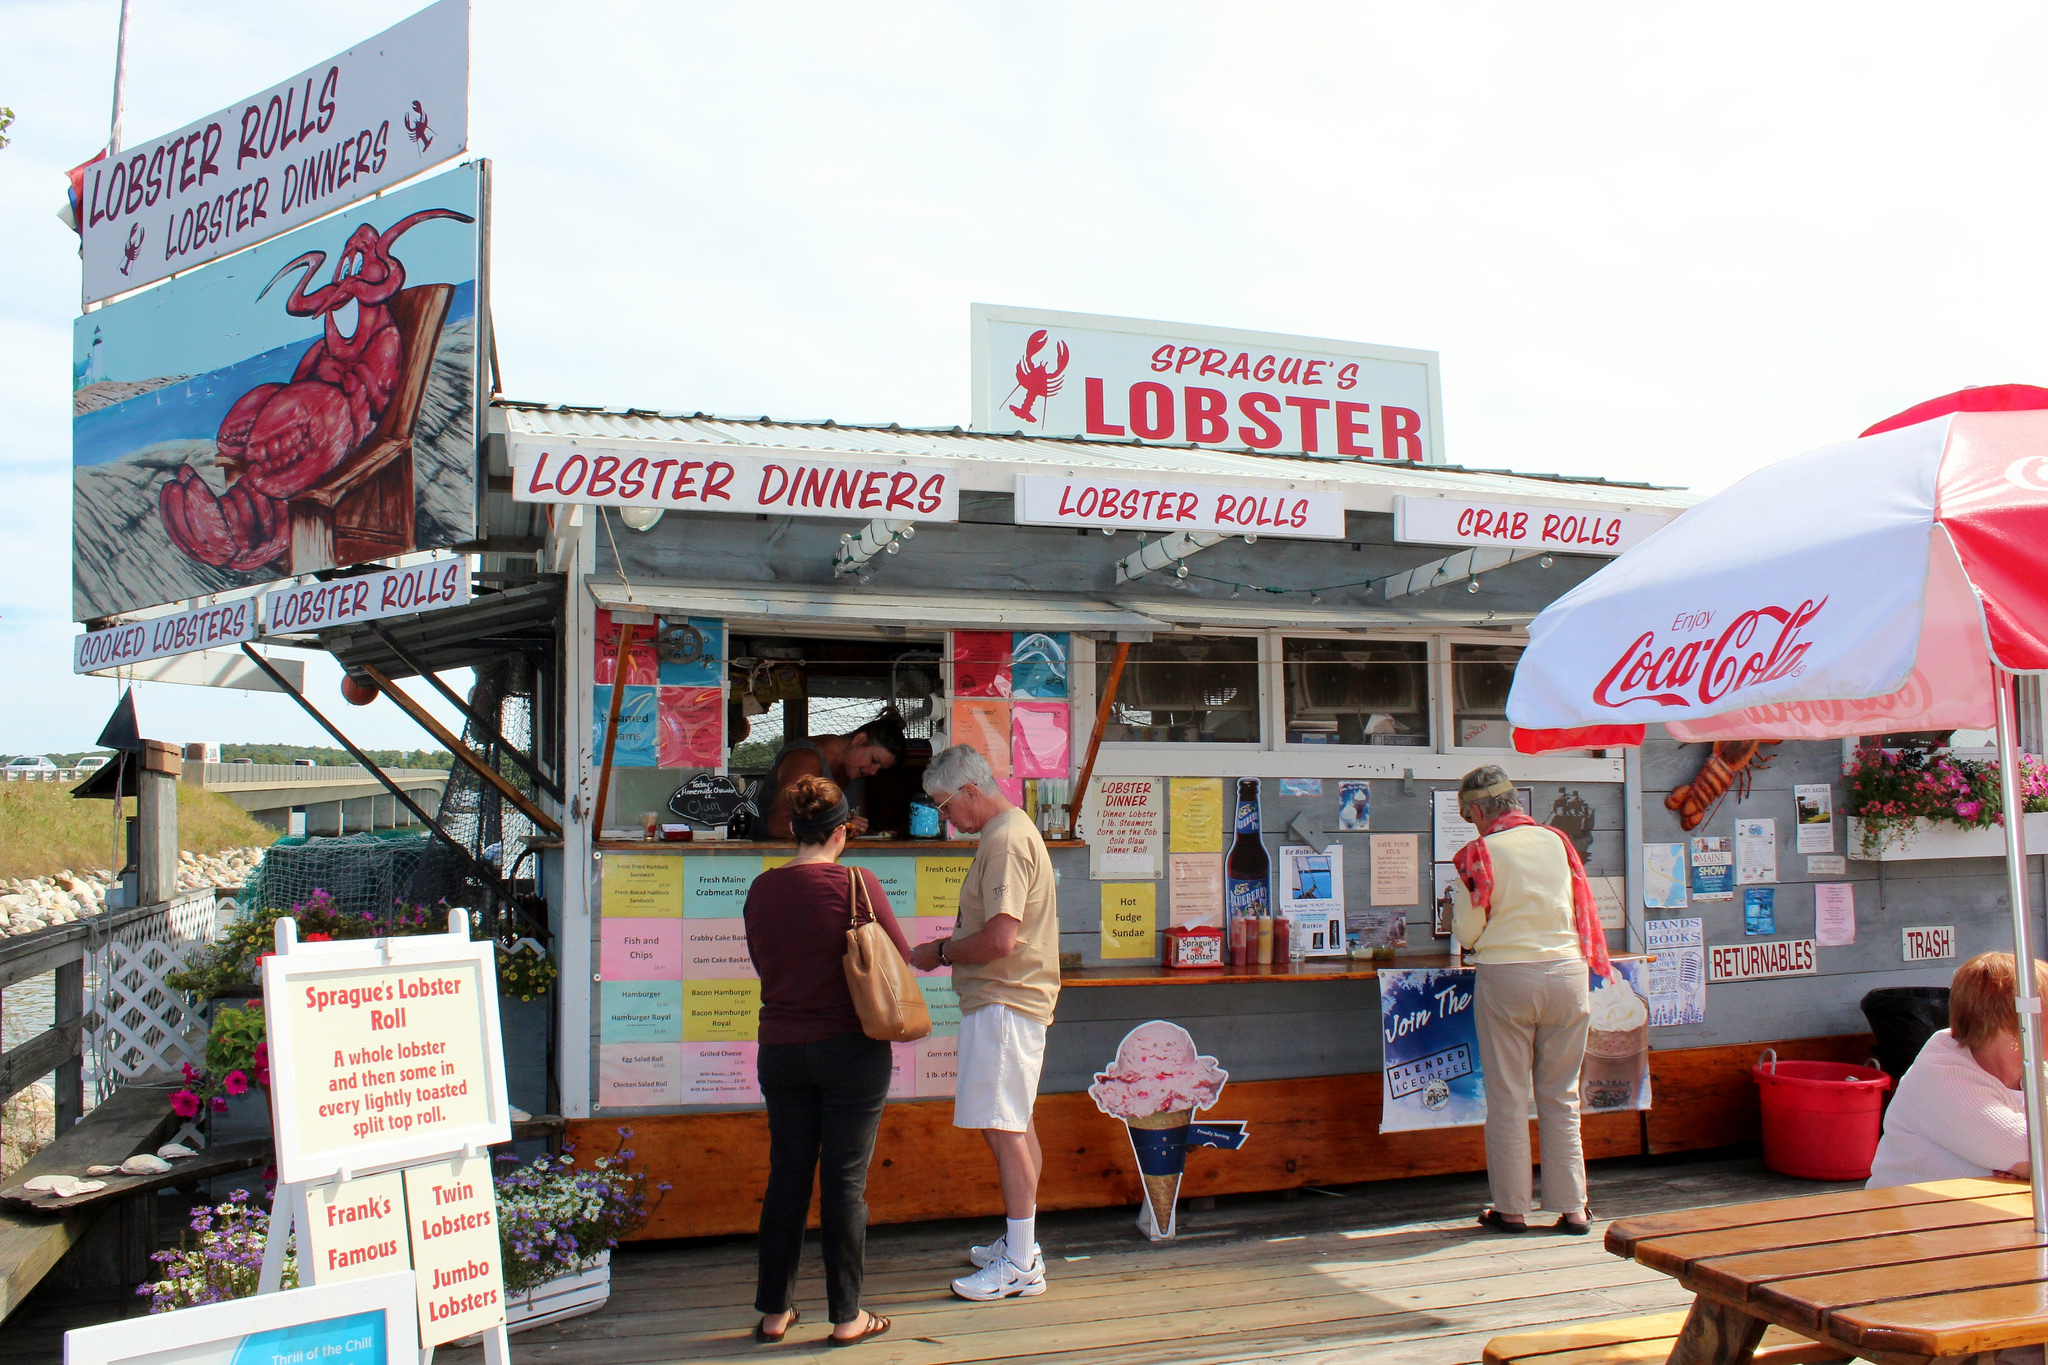 A Brief History of the Lobster Roll